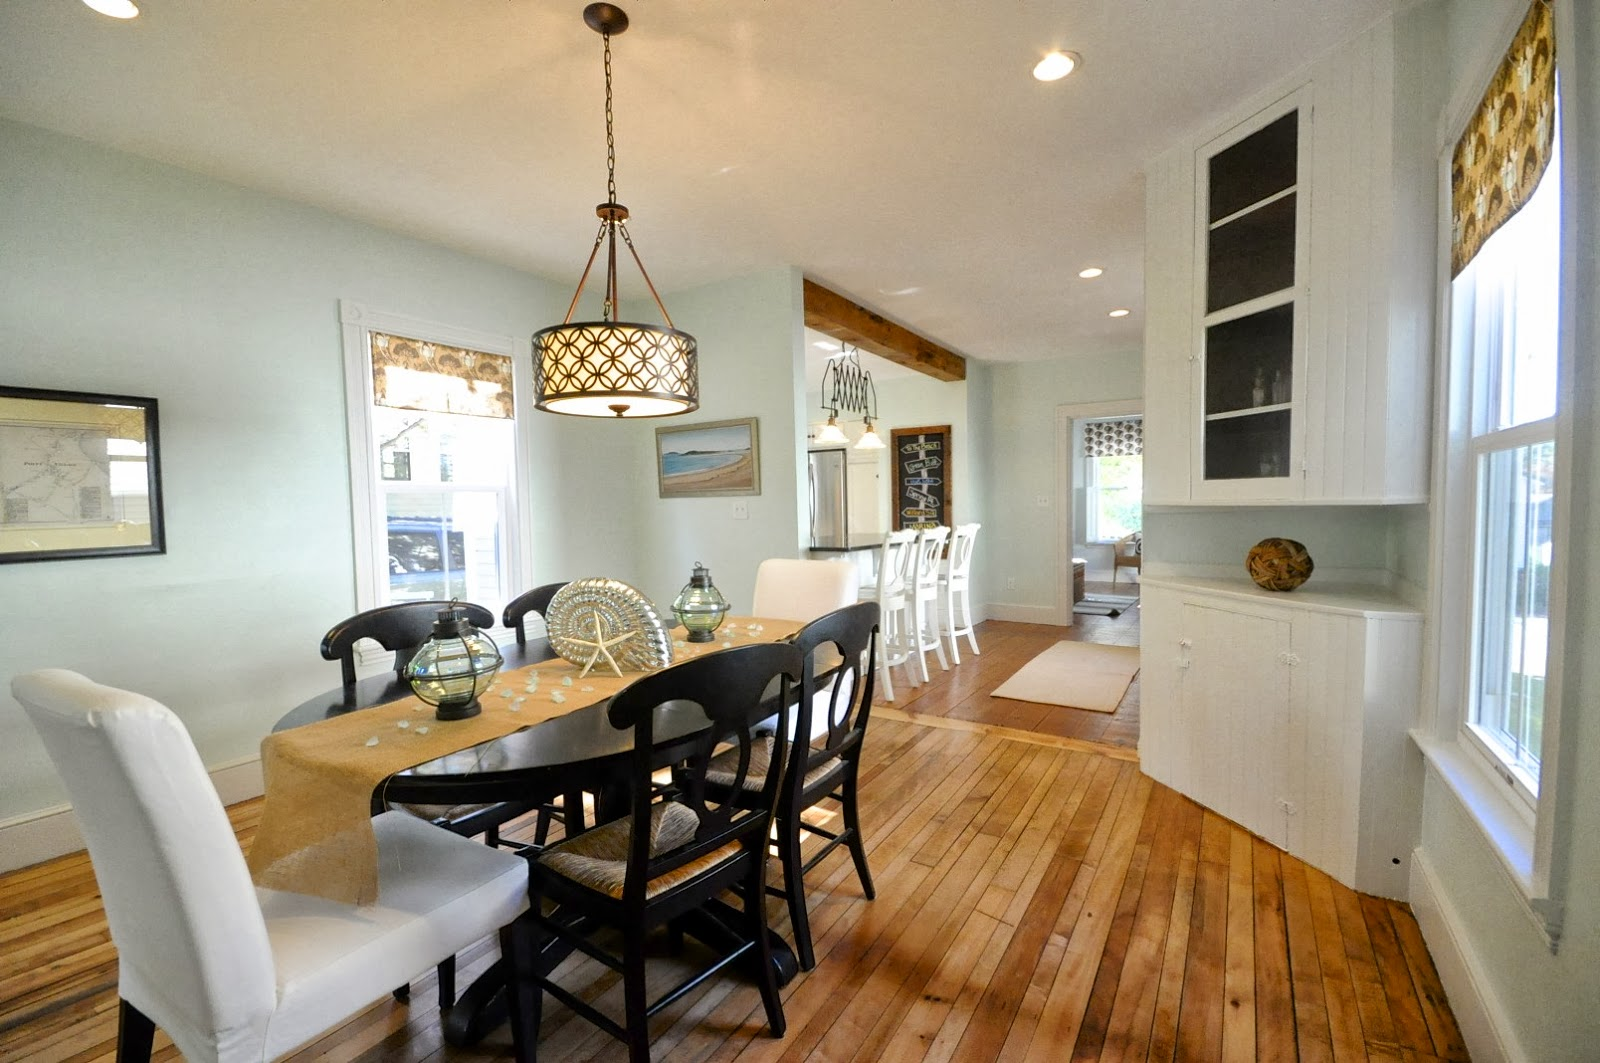 Lovely Create An Open Kitchen And Dining Area | SoPo Cottage Featured On  Remodelaholic.com #